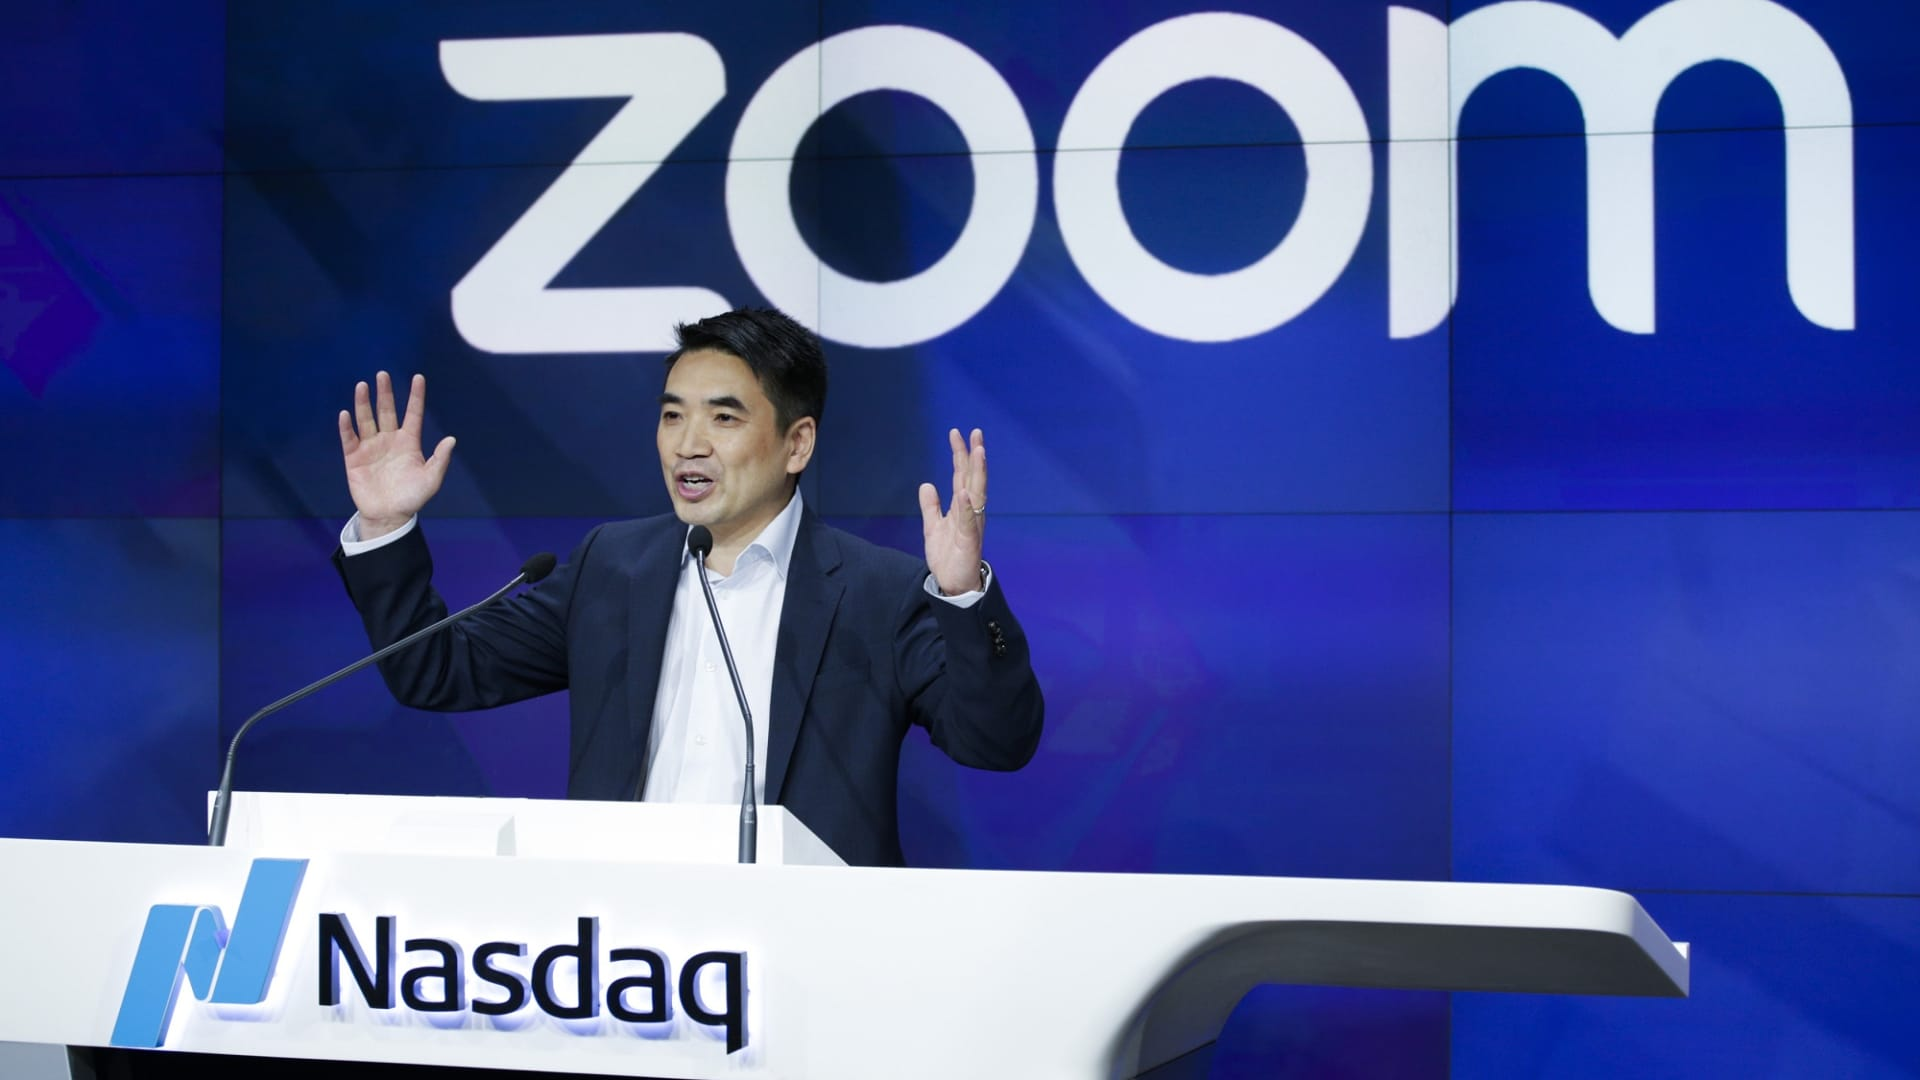 Zoom founder Eric Yuan speaks before the Nasdaq opening bell ceremony on April 18, 2019 in New York City.